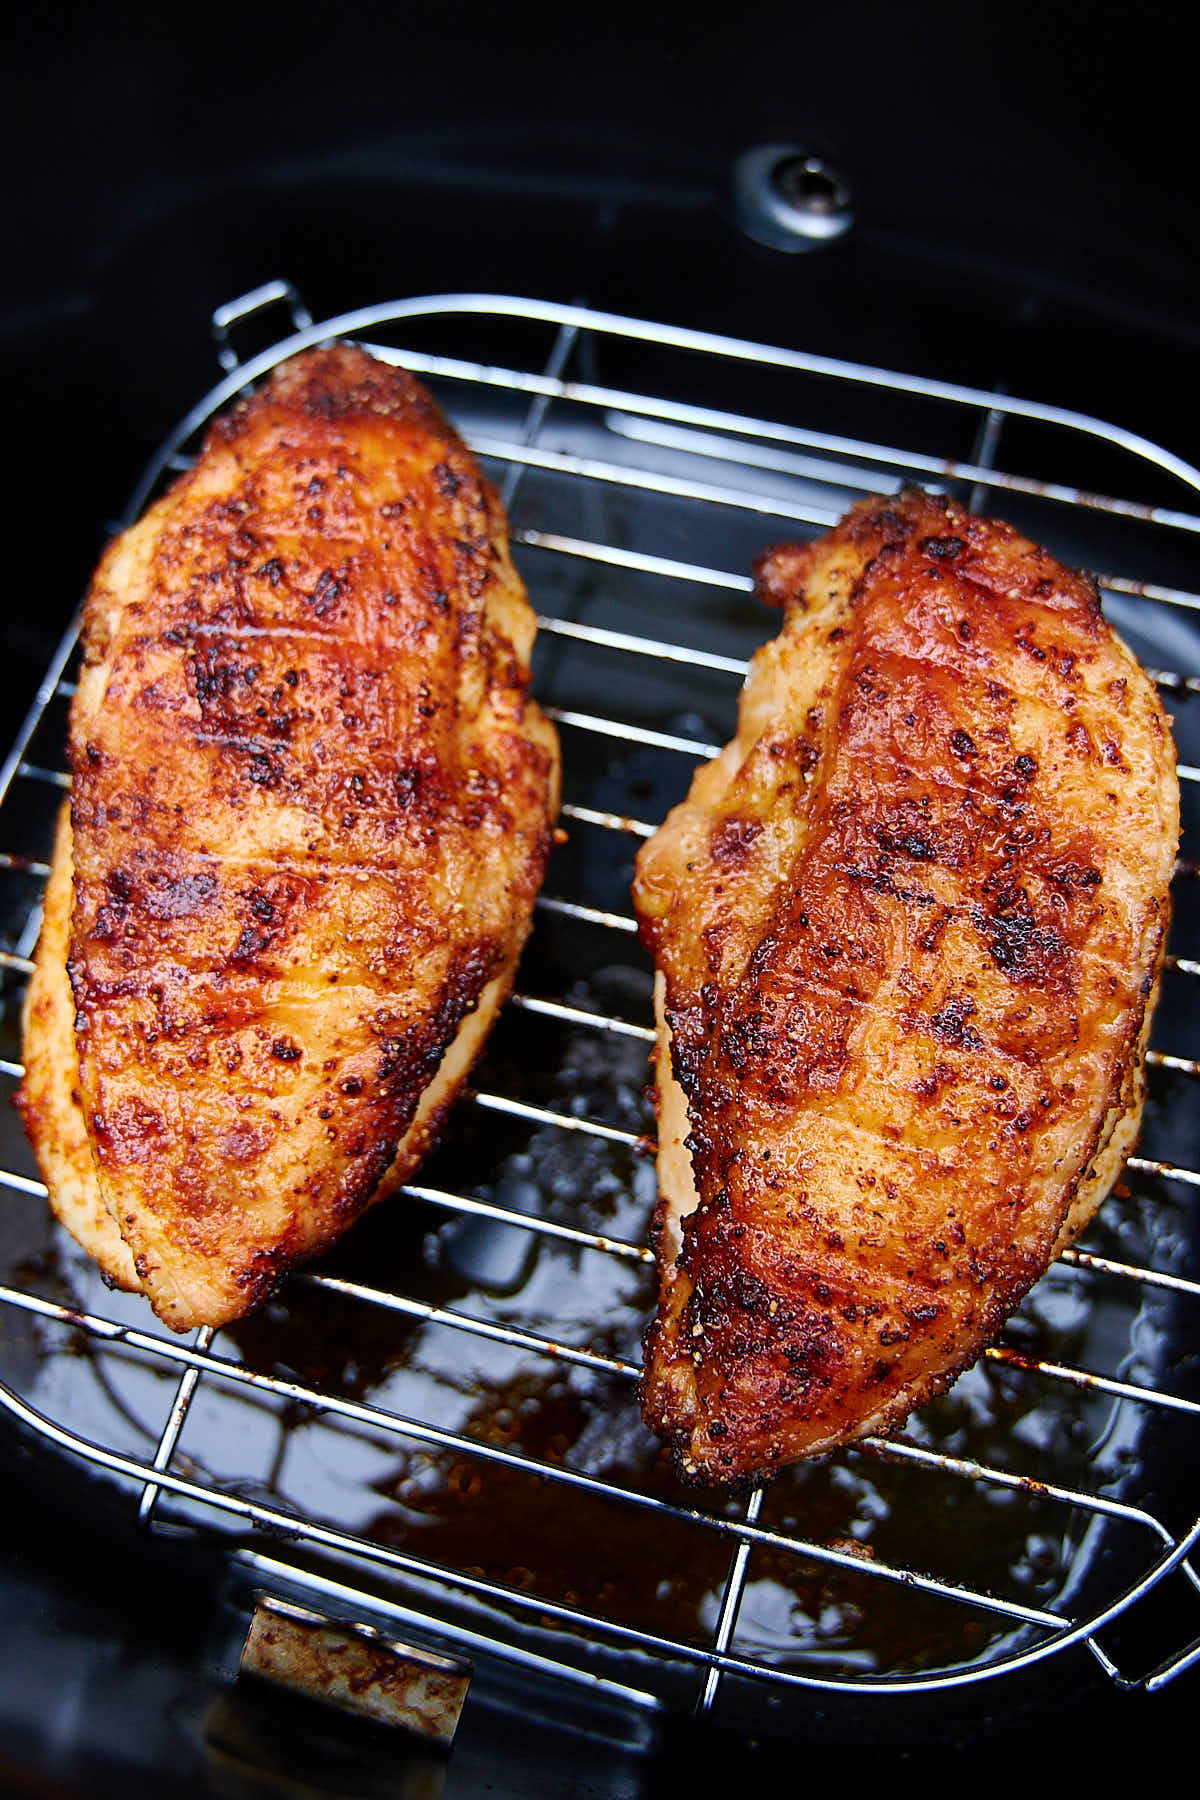 Two crispy, golden brown air fried chicken breasts sitting on a rack inside an air fryer.